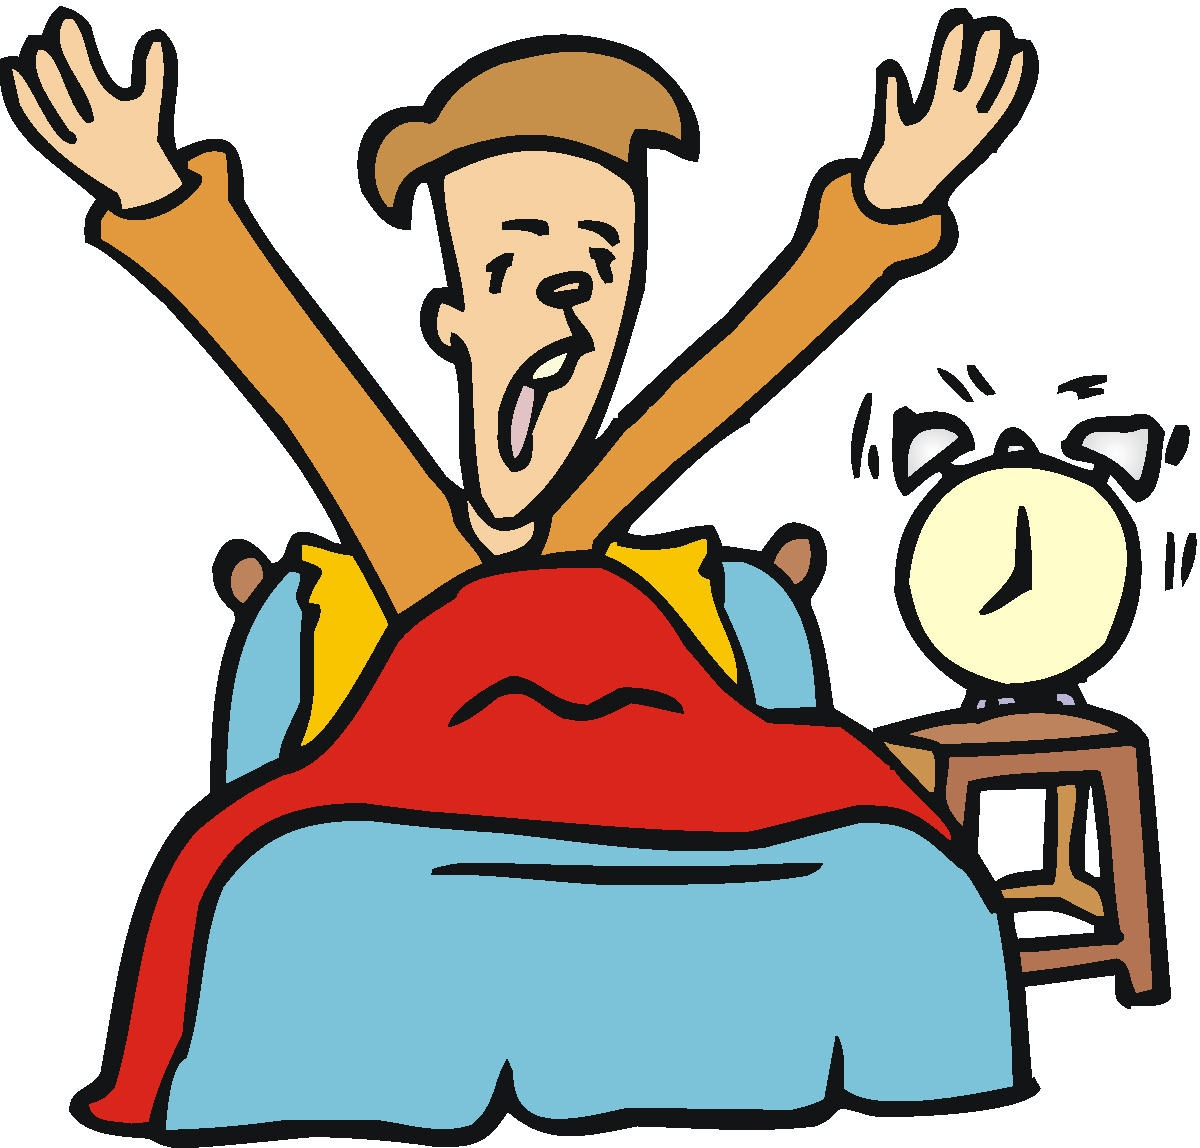 Free Wake Up Clipart, Download Free Clip Art, Free Clip Art.